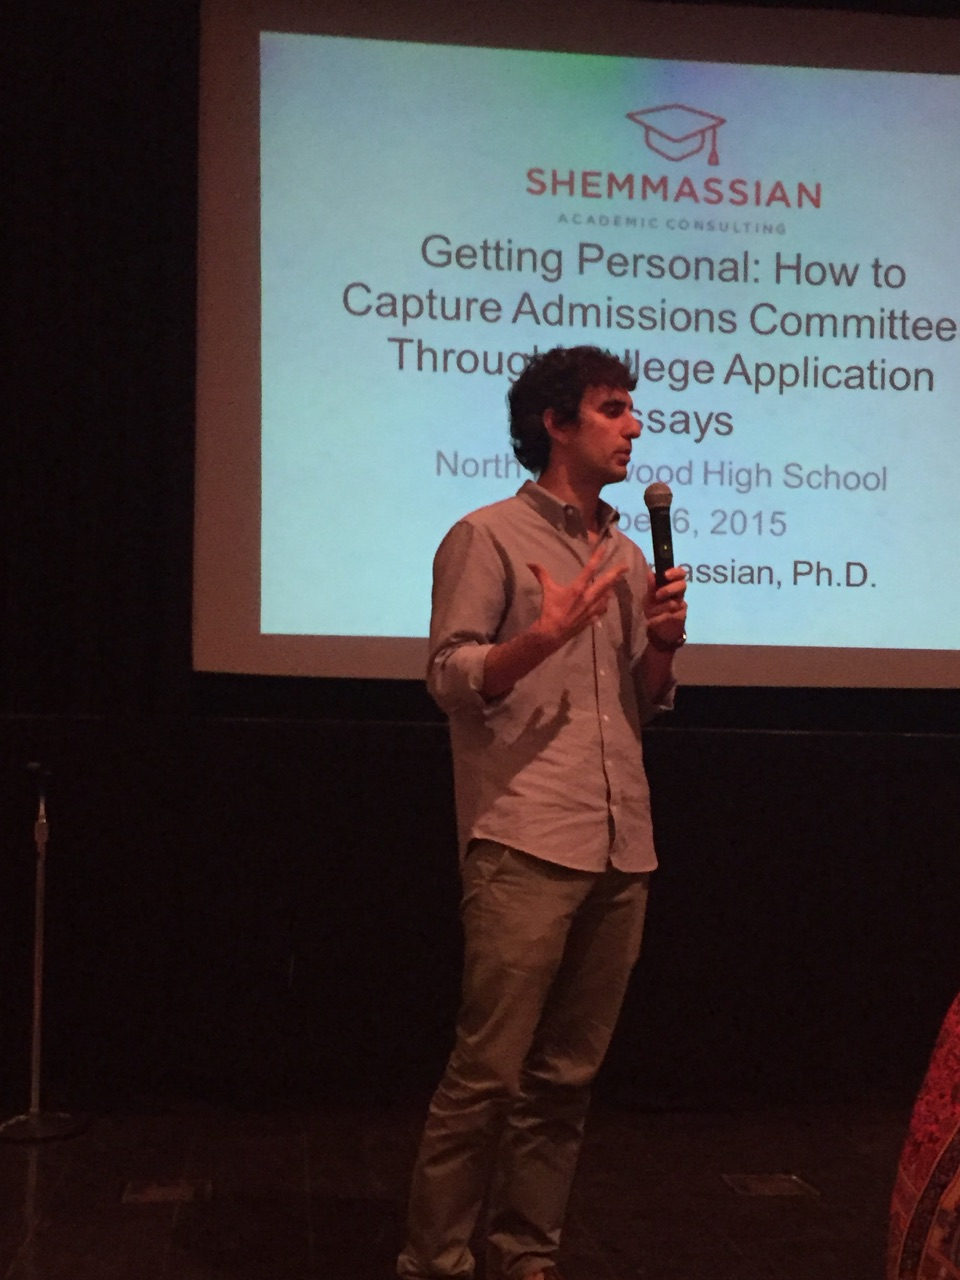 Speaking at North Hollywood High School